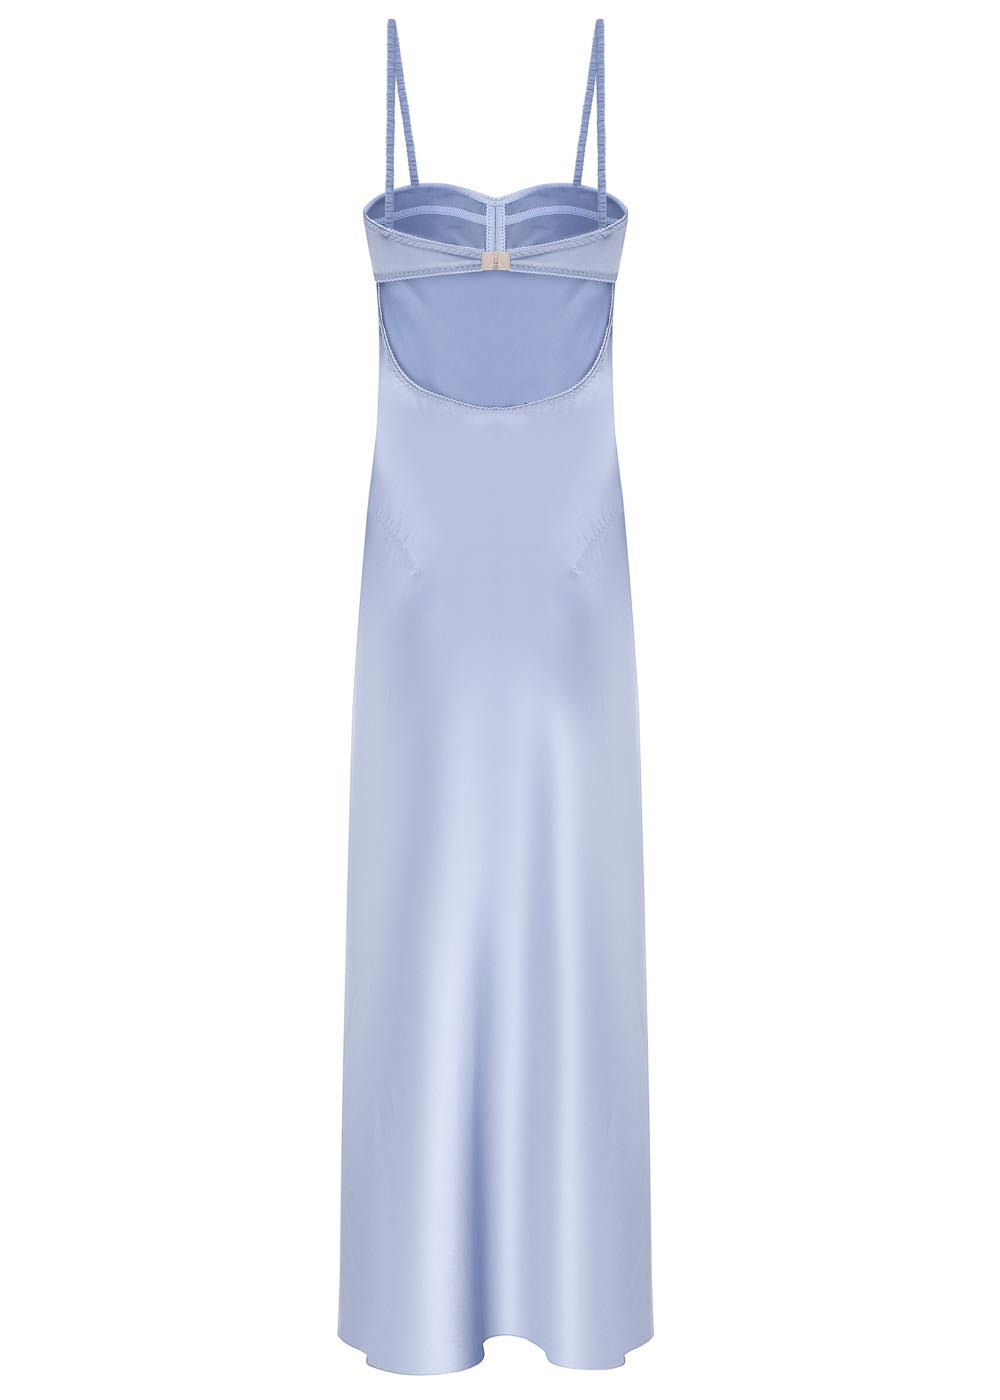 ANNA OCTOBER - Sky Midi Dress - sky blue